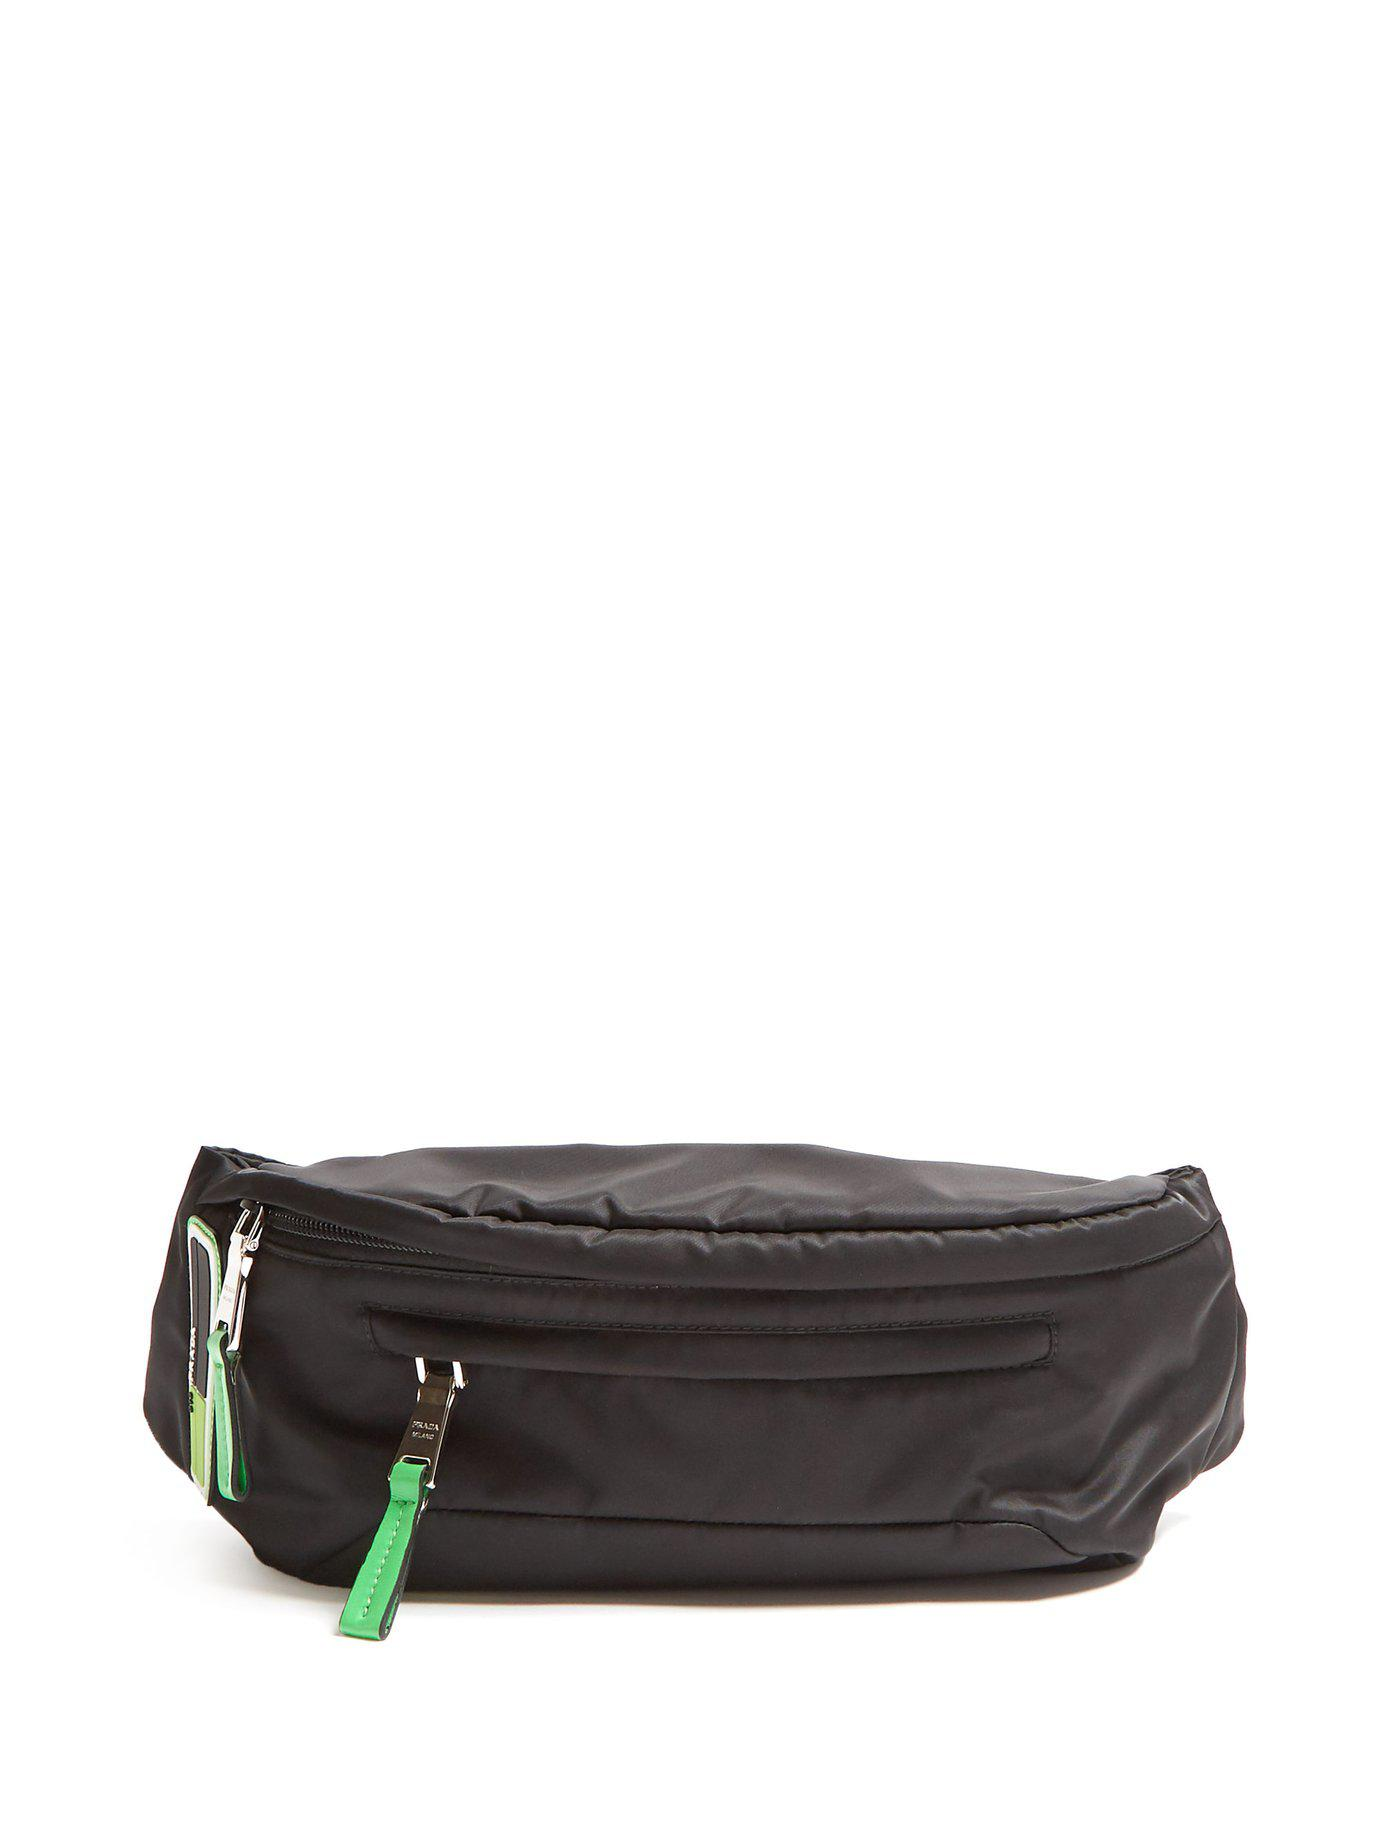 c5d72df04b43 Prada Logo Nylon Belt Bag in Black for Men - Lyst